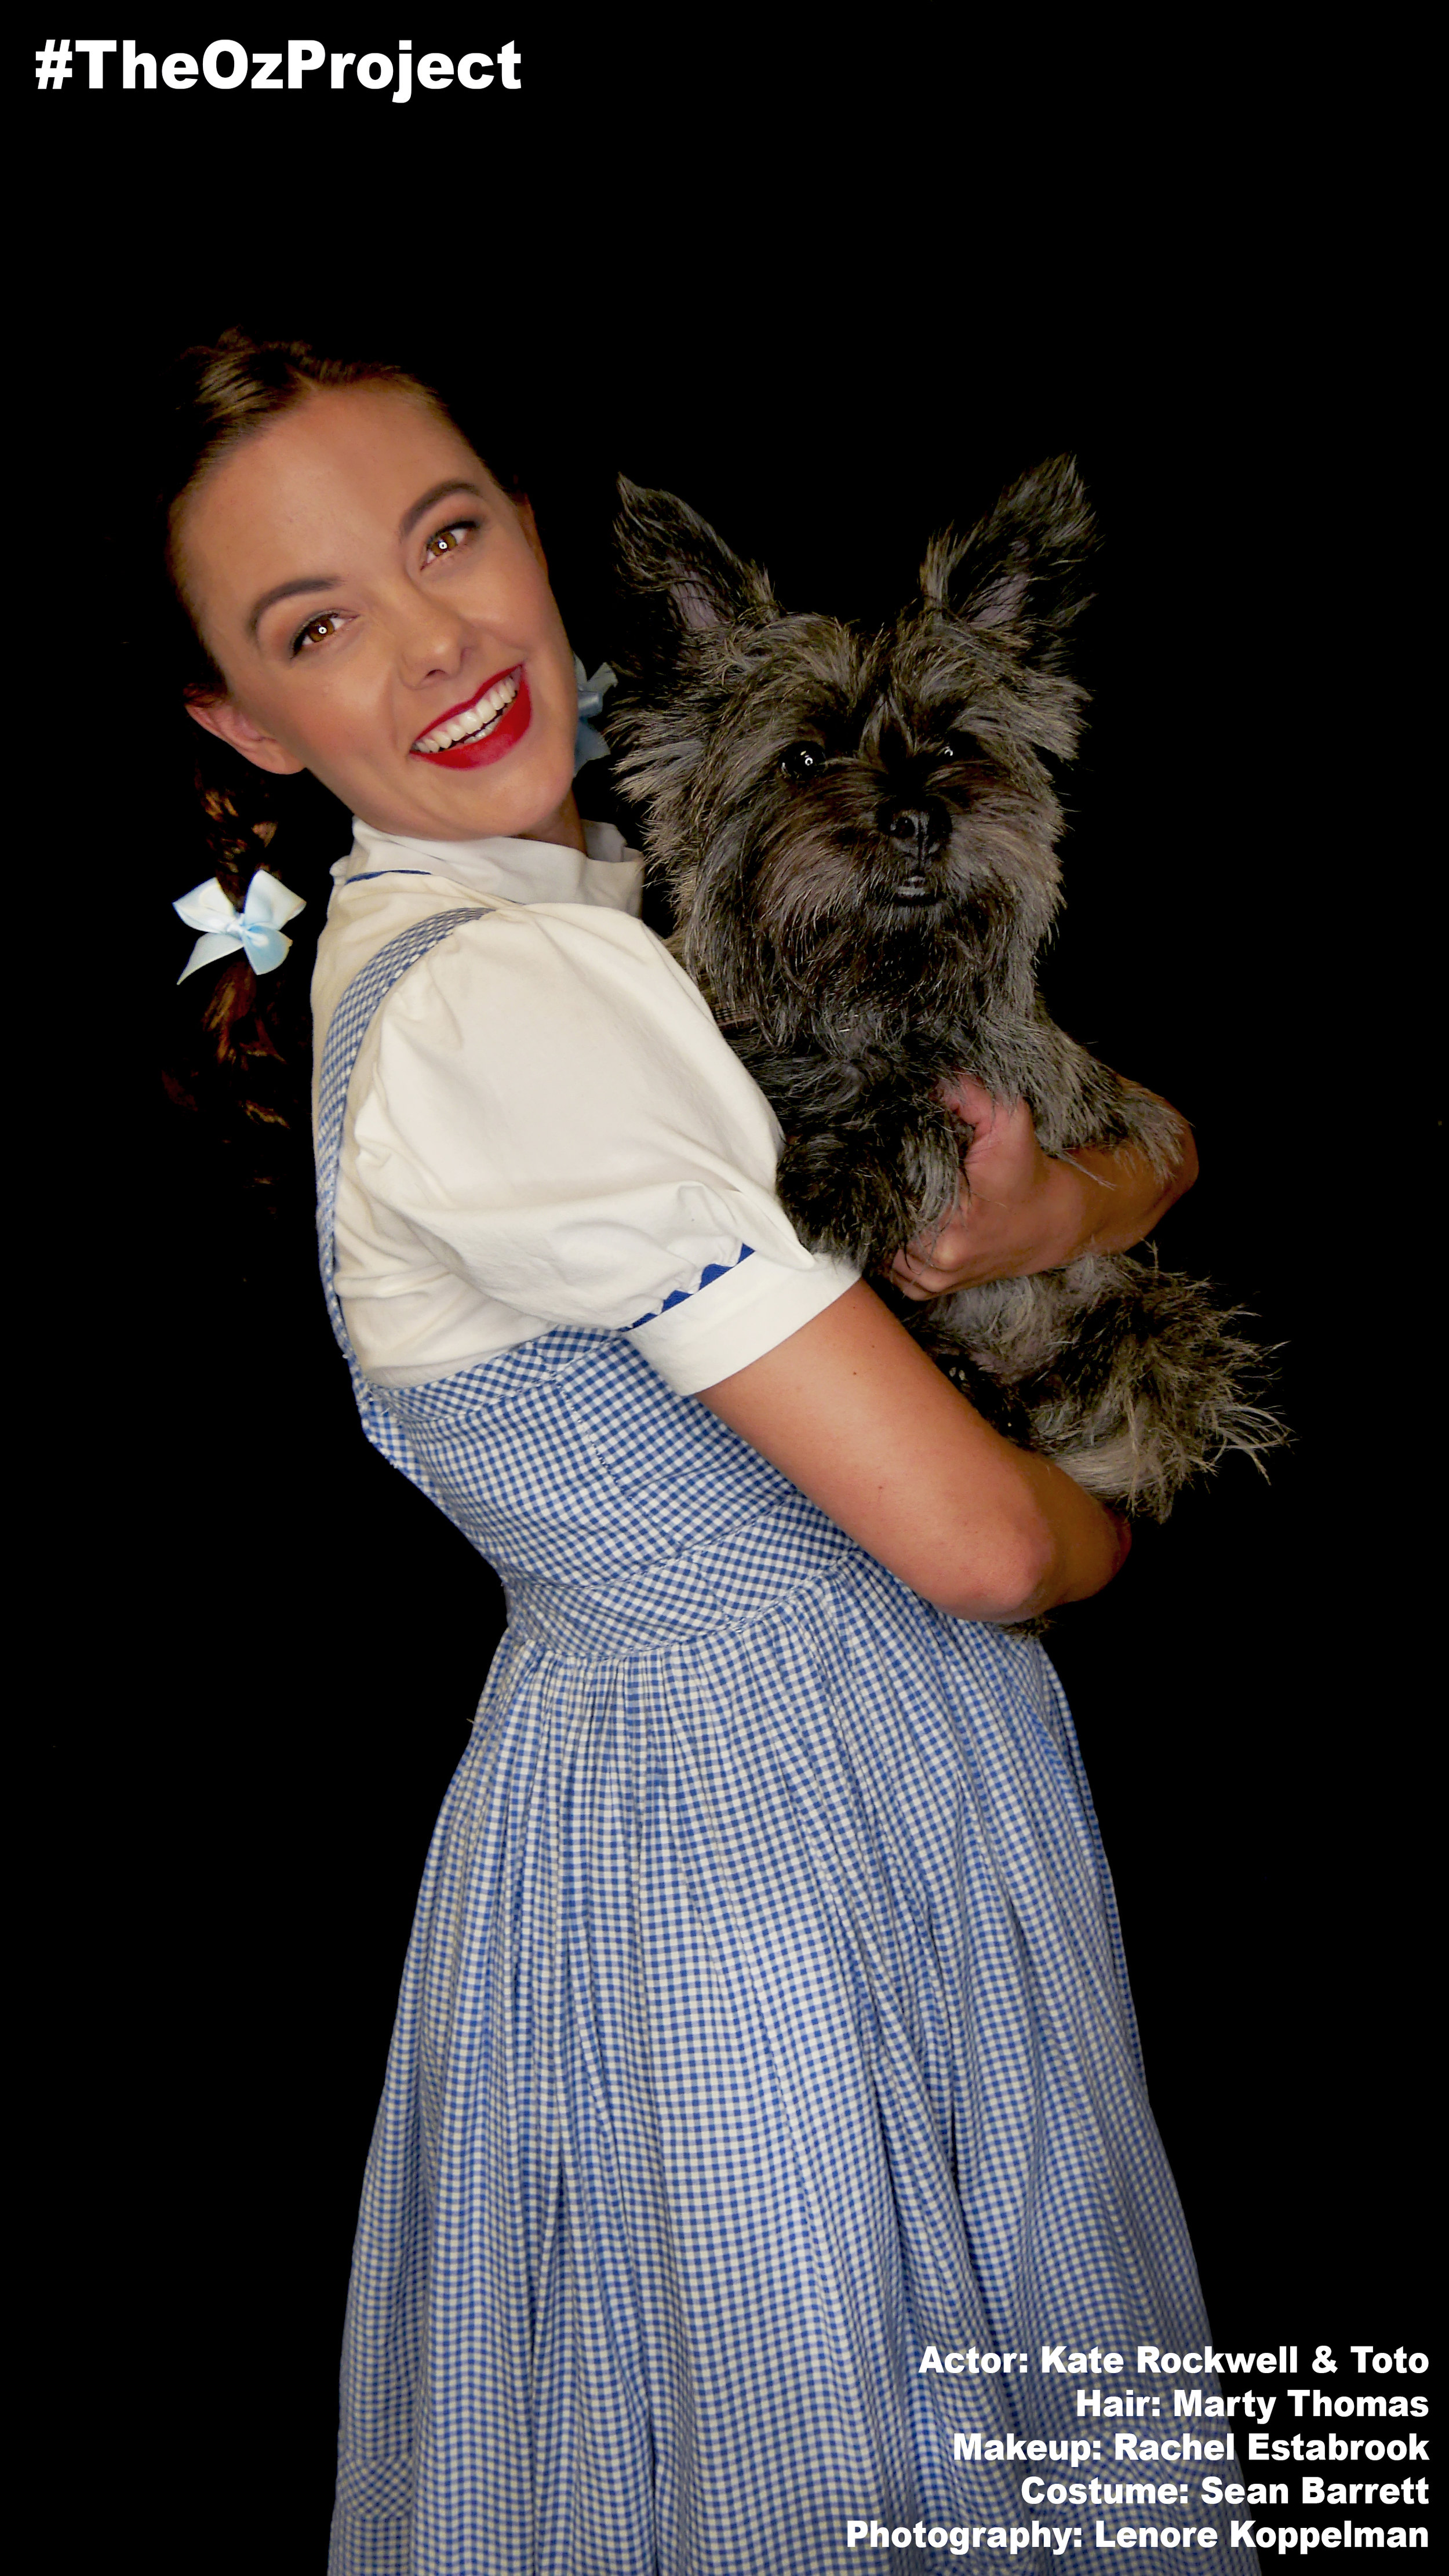 Kate Rockwell and toto 2 TOP.jpg